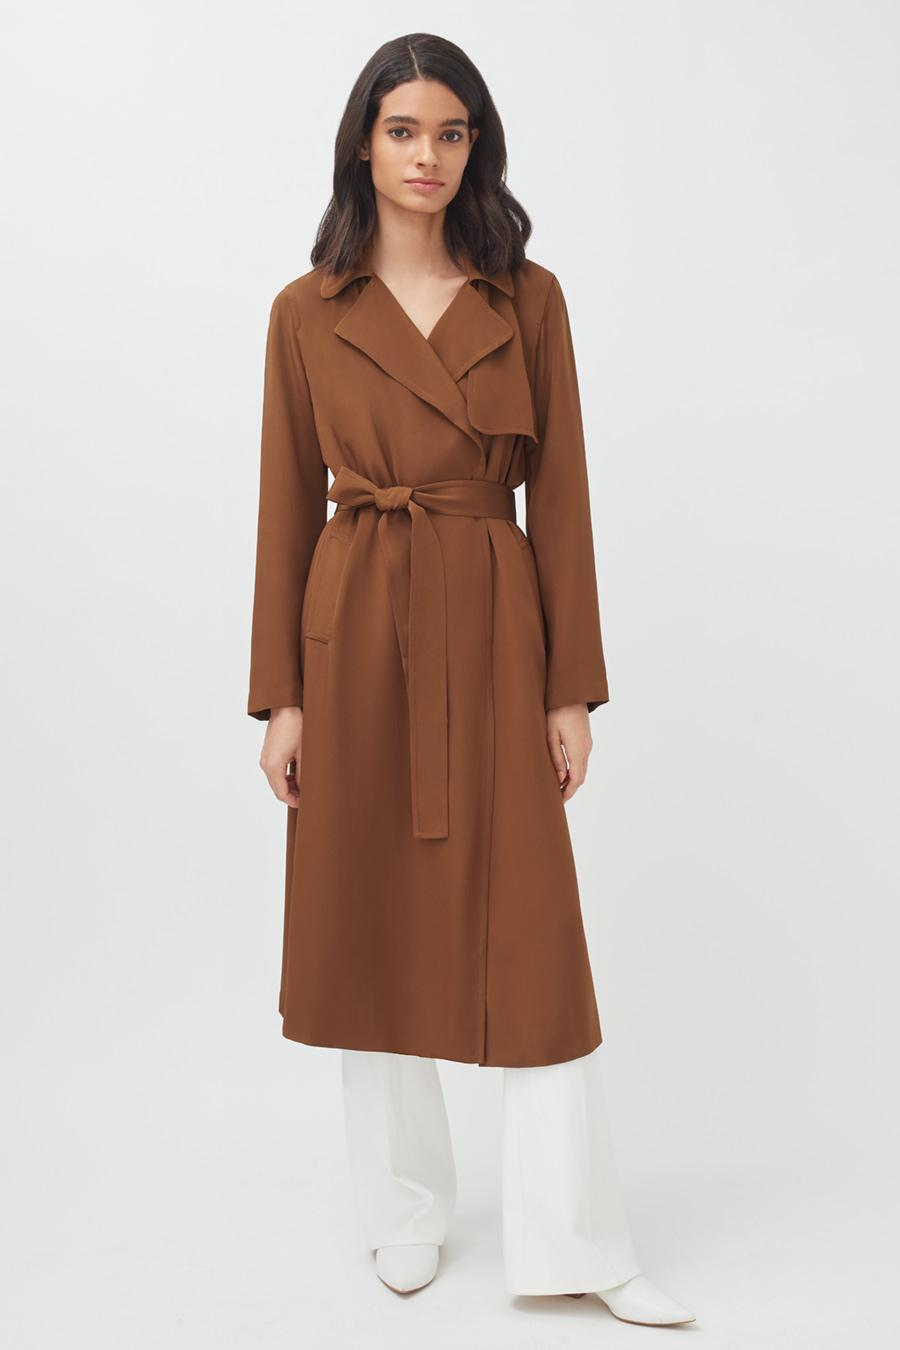 Women's Silk Classic Trench in Chestnut   Size: 4